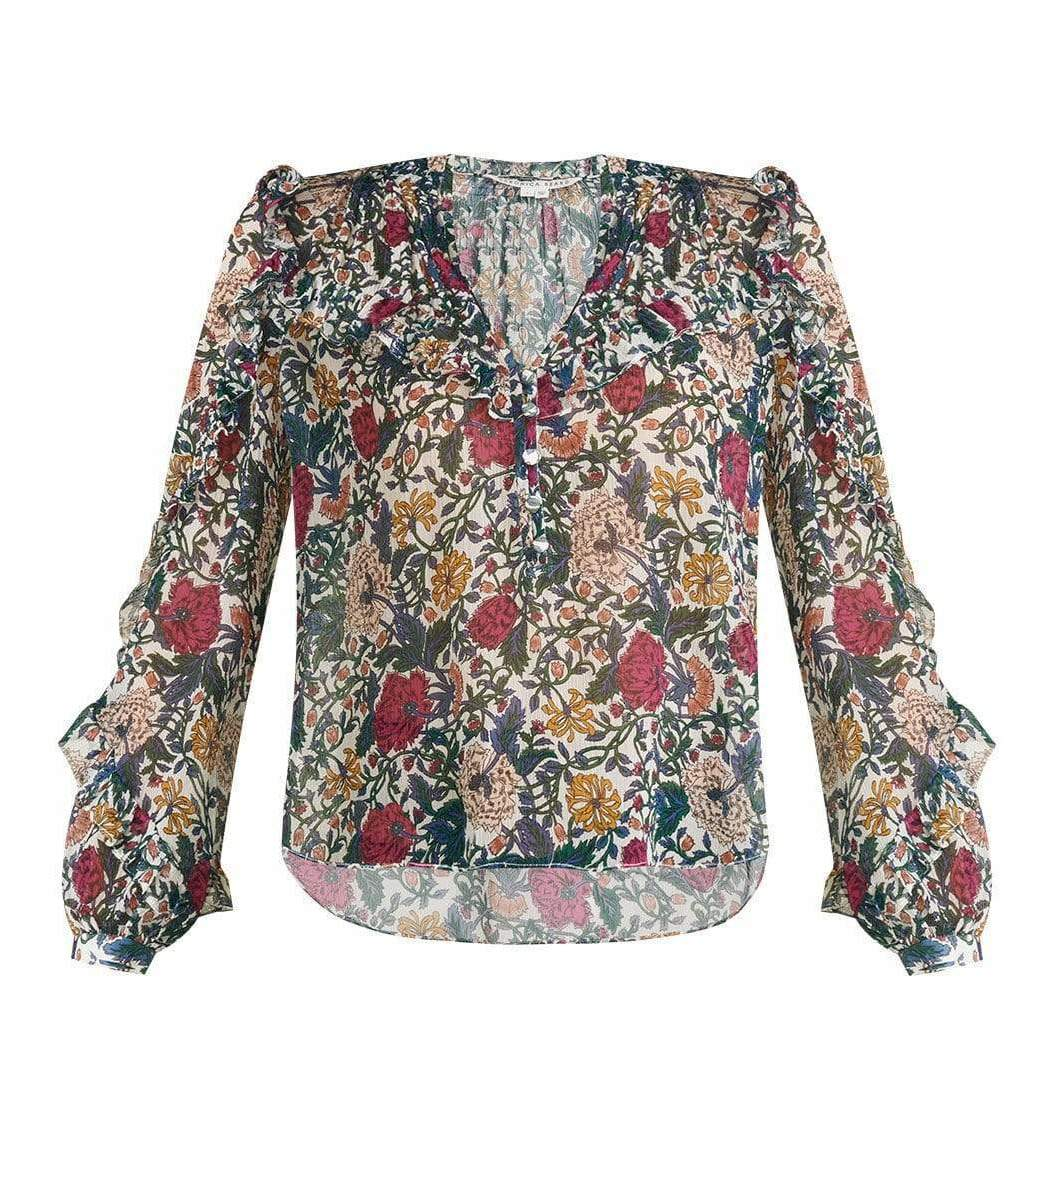 Veronica Beard Abra Floral Blouse